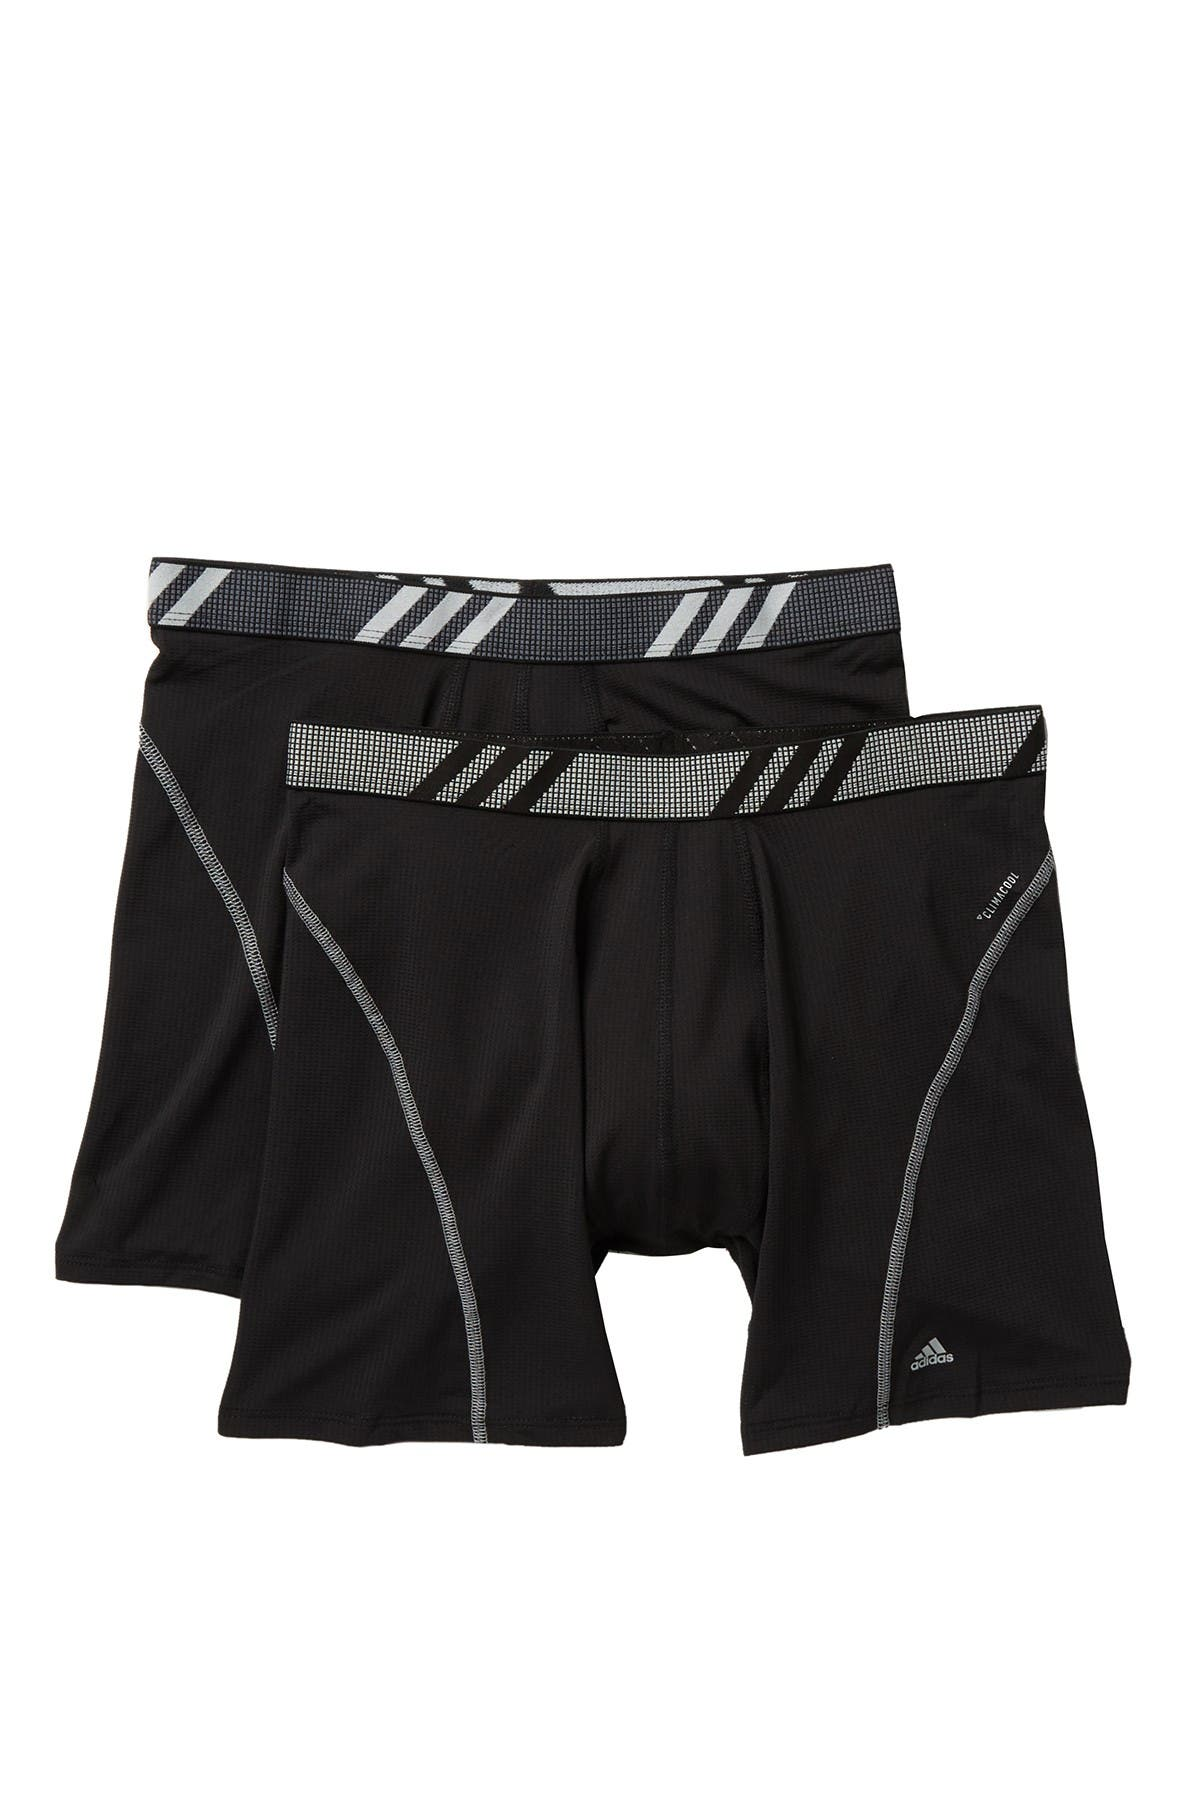 Image of adidas Sport Performance Mesh Boxer Brief - Pack of 2